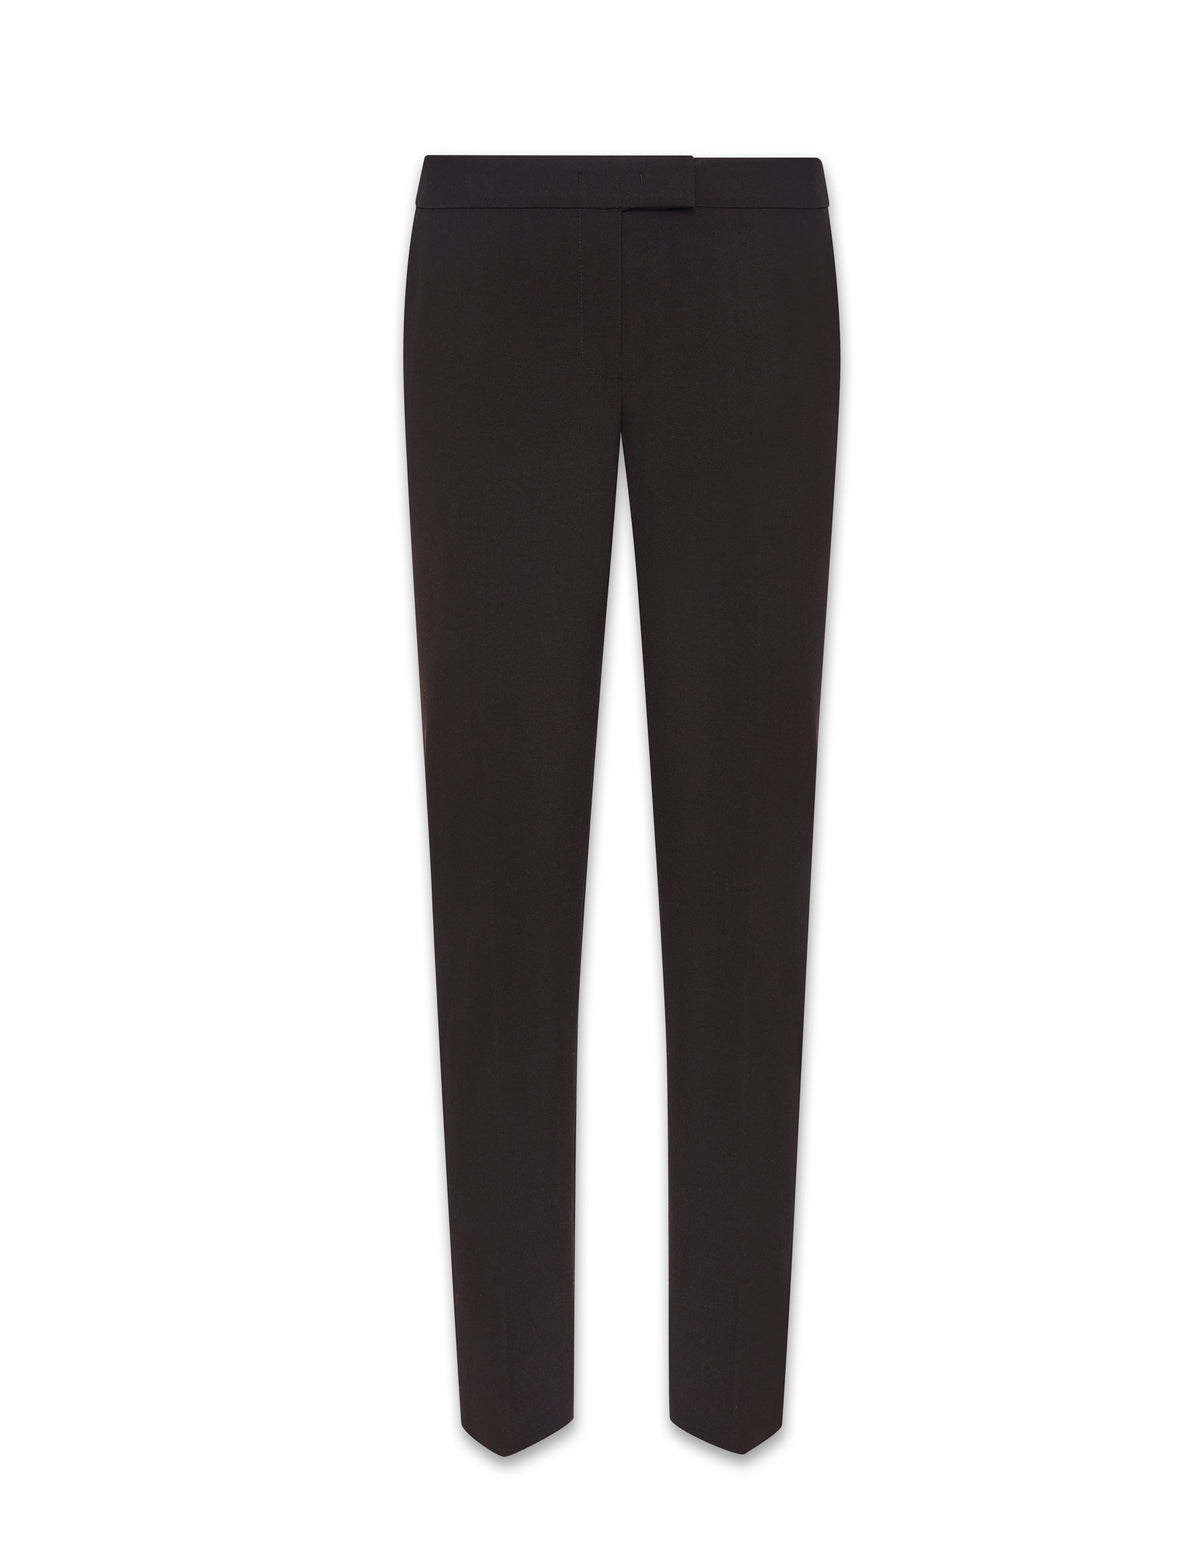 Anne Klein Black Slim Leg Pant